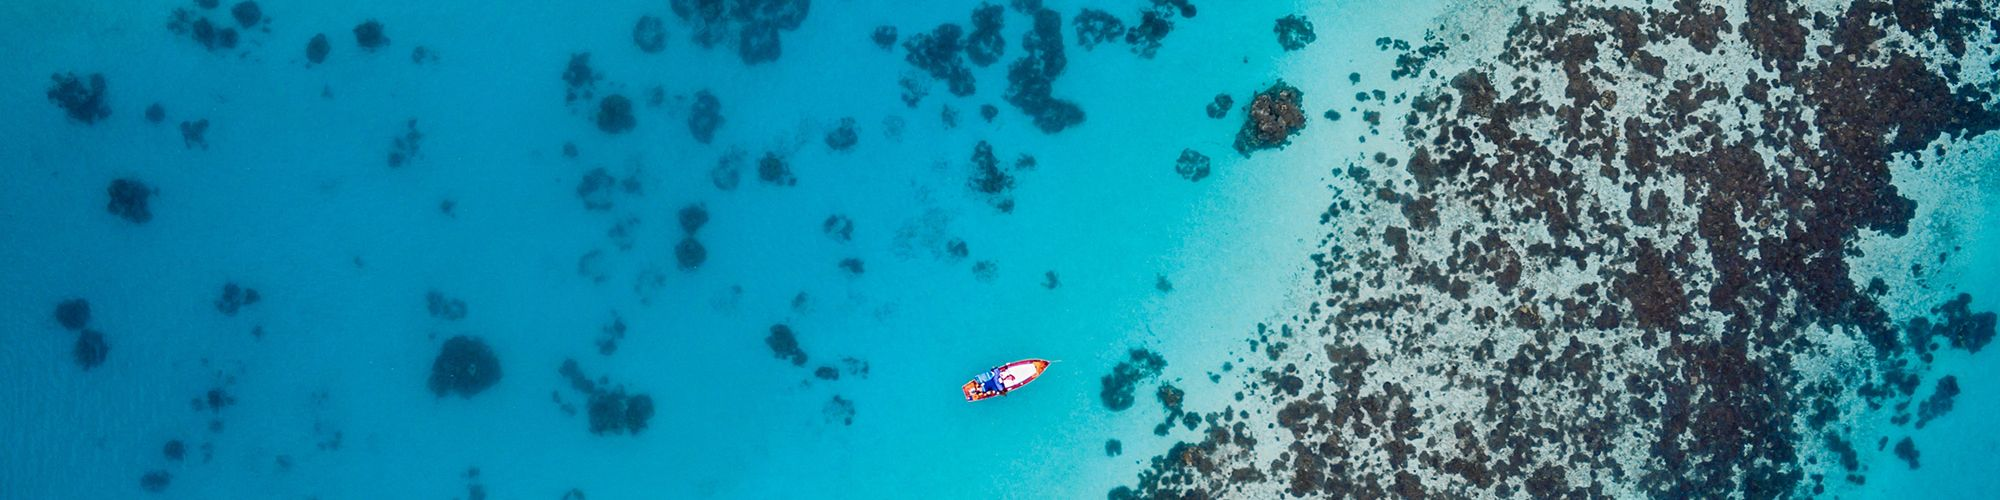 Snorkeling Maldives © Ishan @seefromthesky